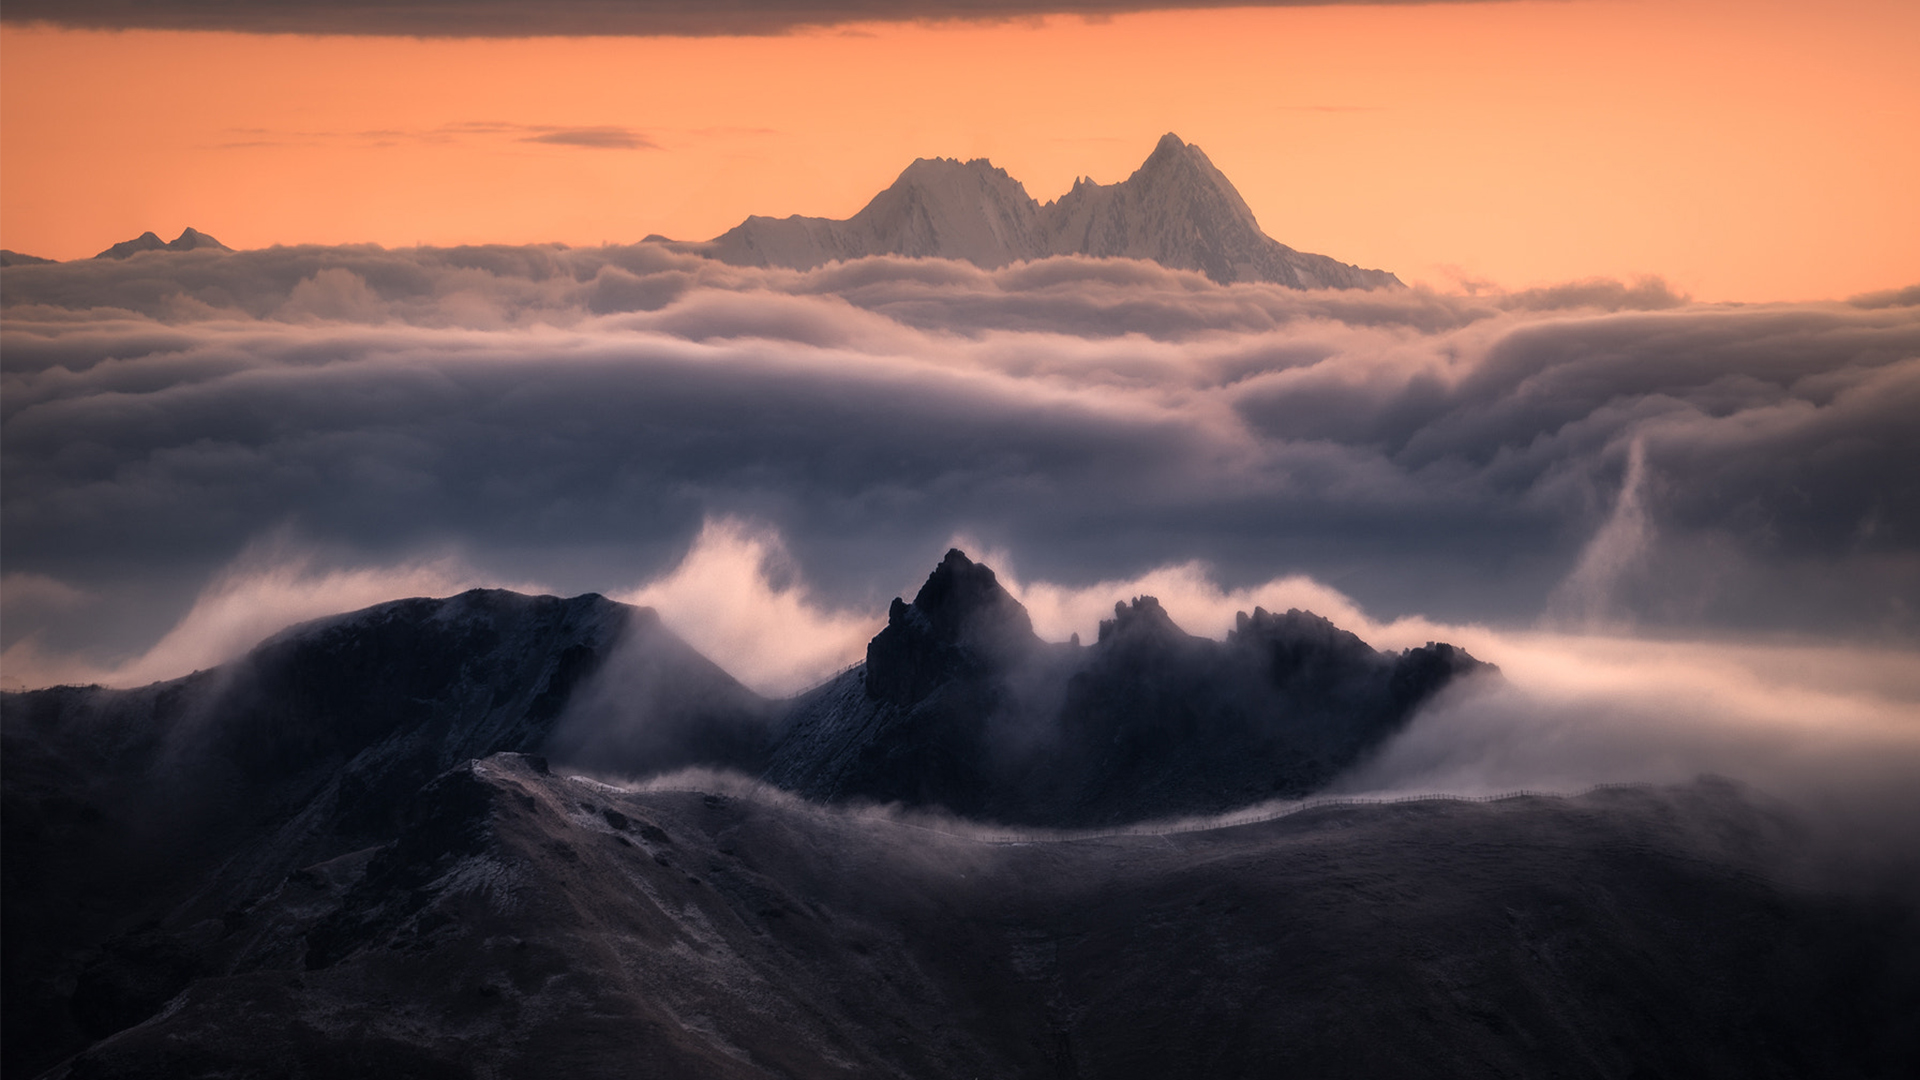 Expert tips on capturing moody, misty mountain photos